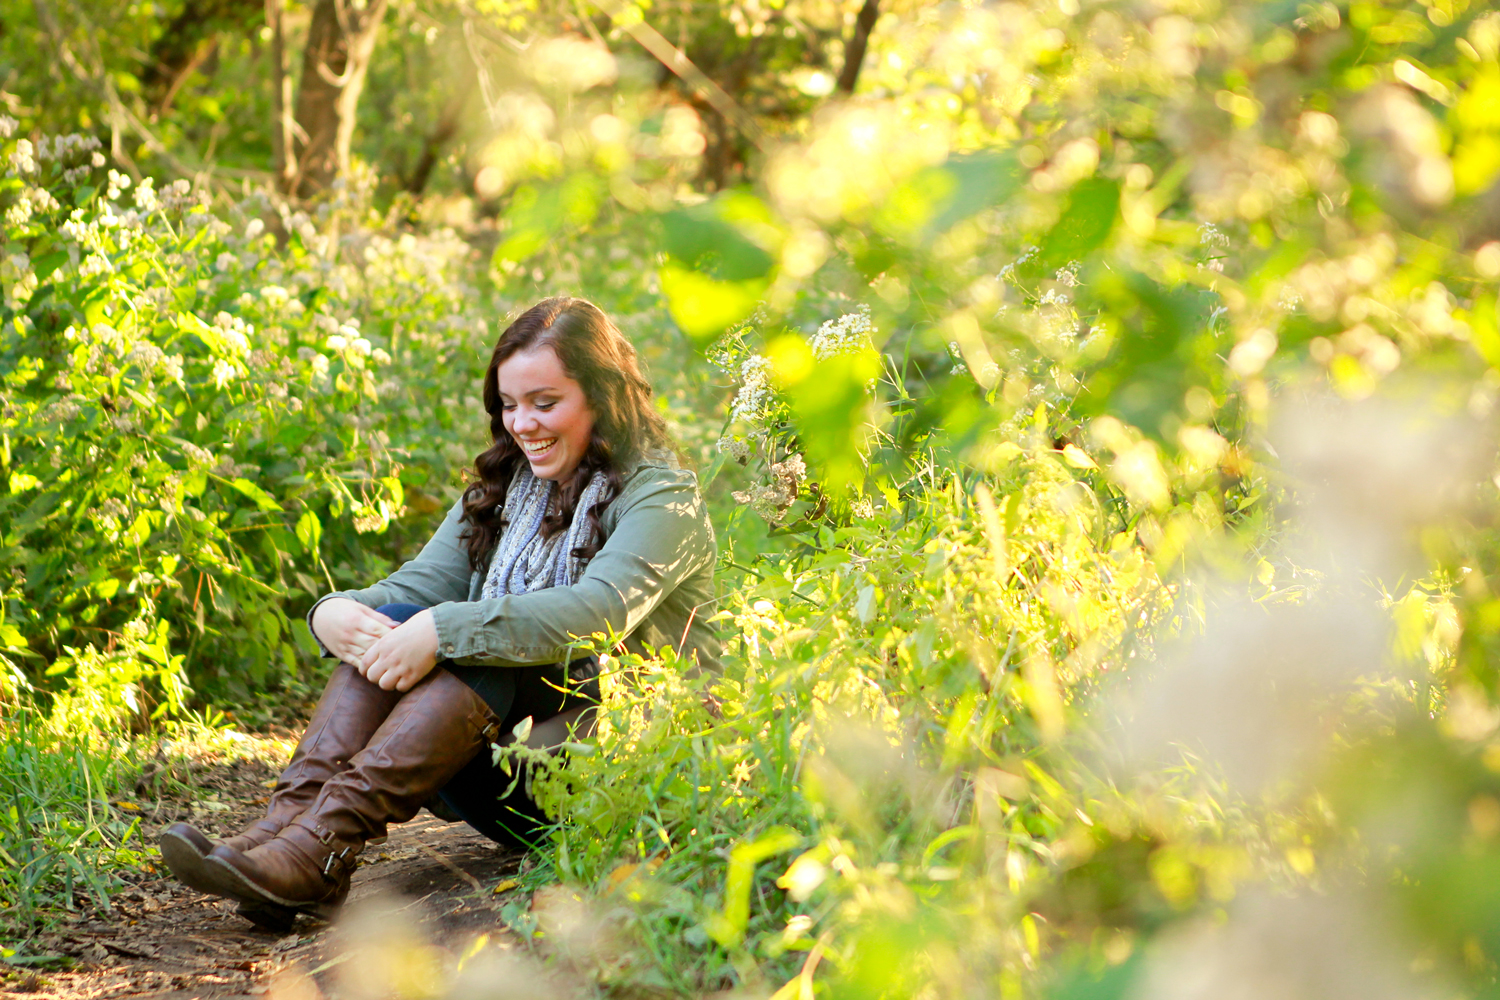 outdoor-nature-hiking-senior-portrait-session-madison-wi-ruthie-hauge-photography.jpg